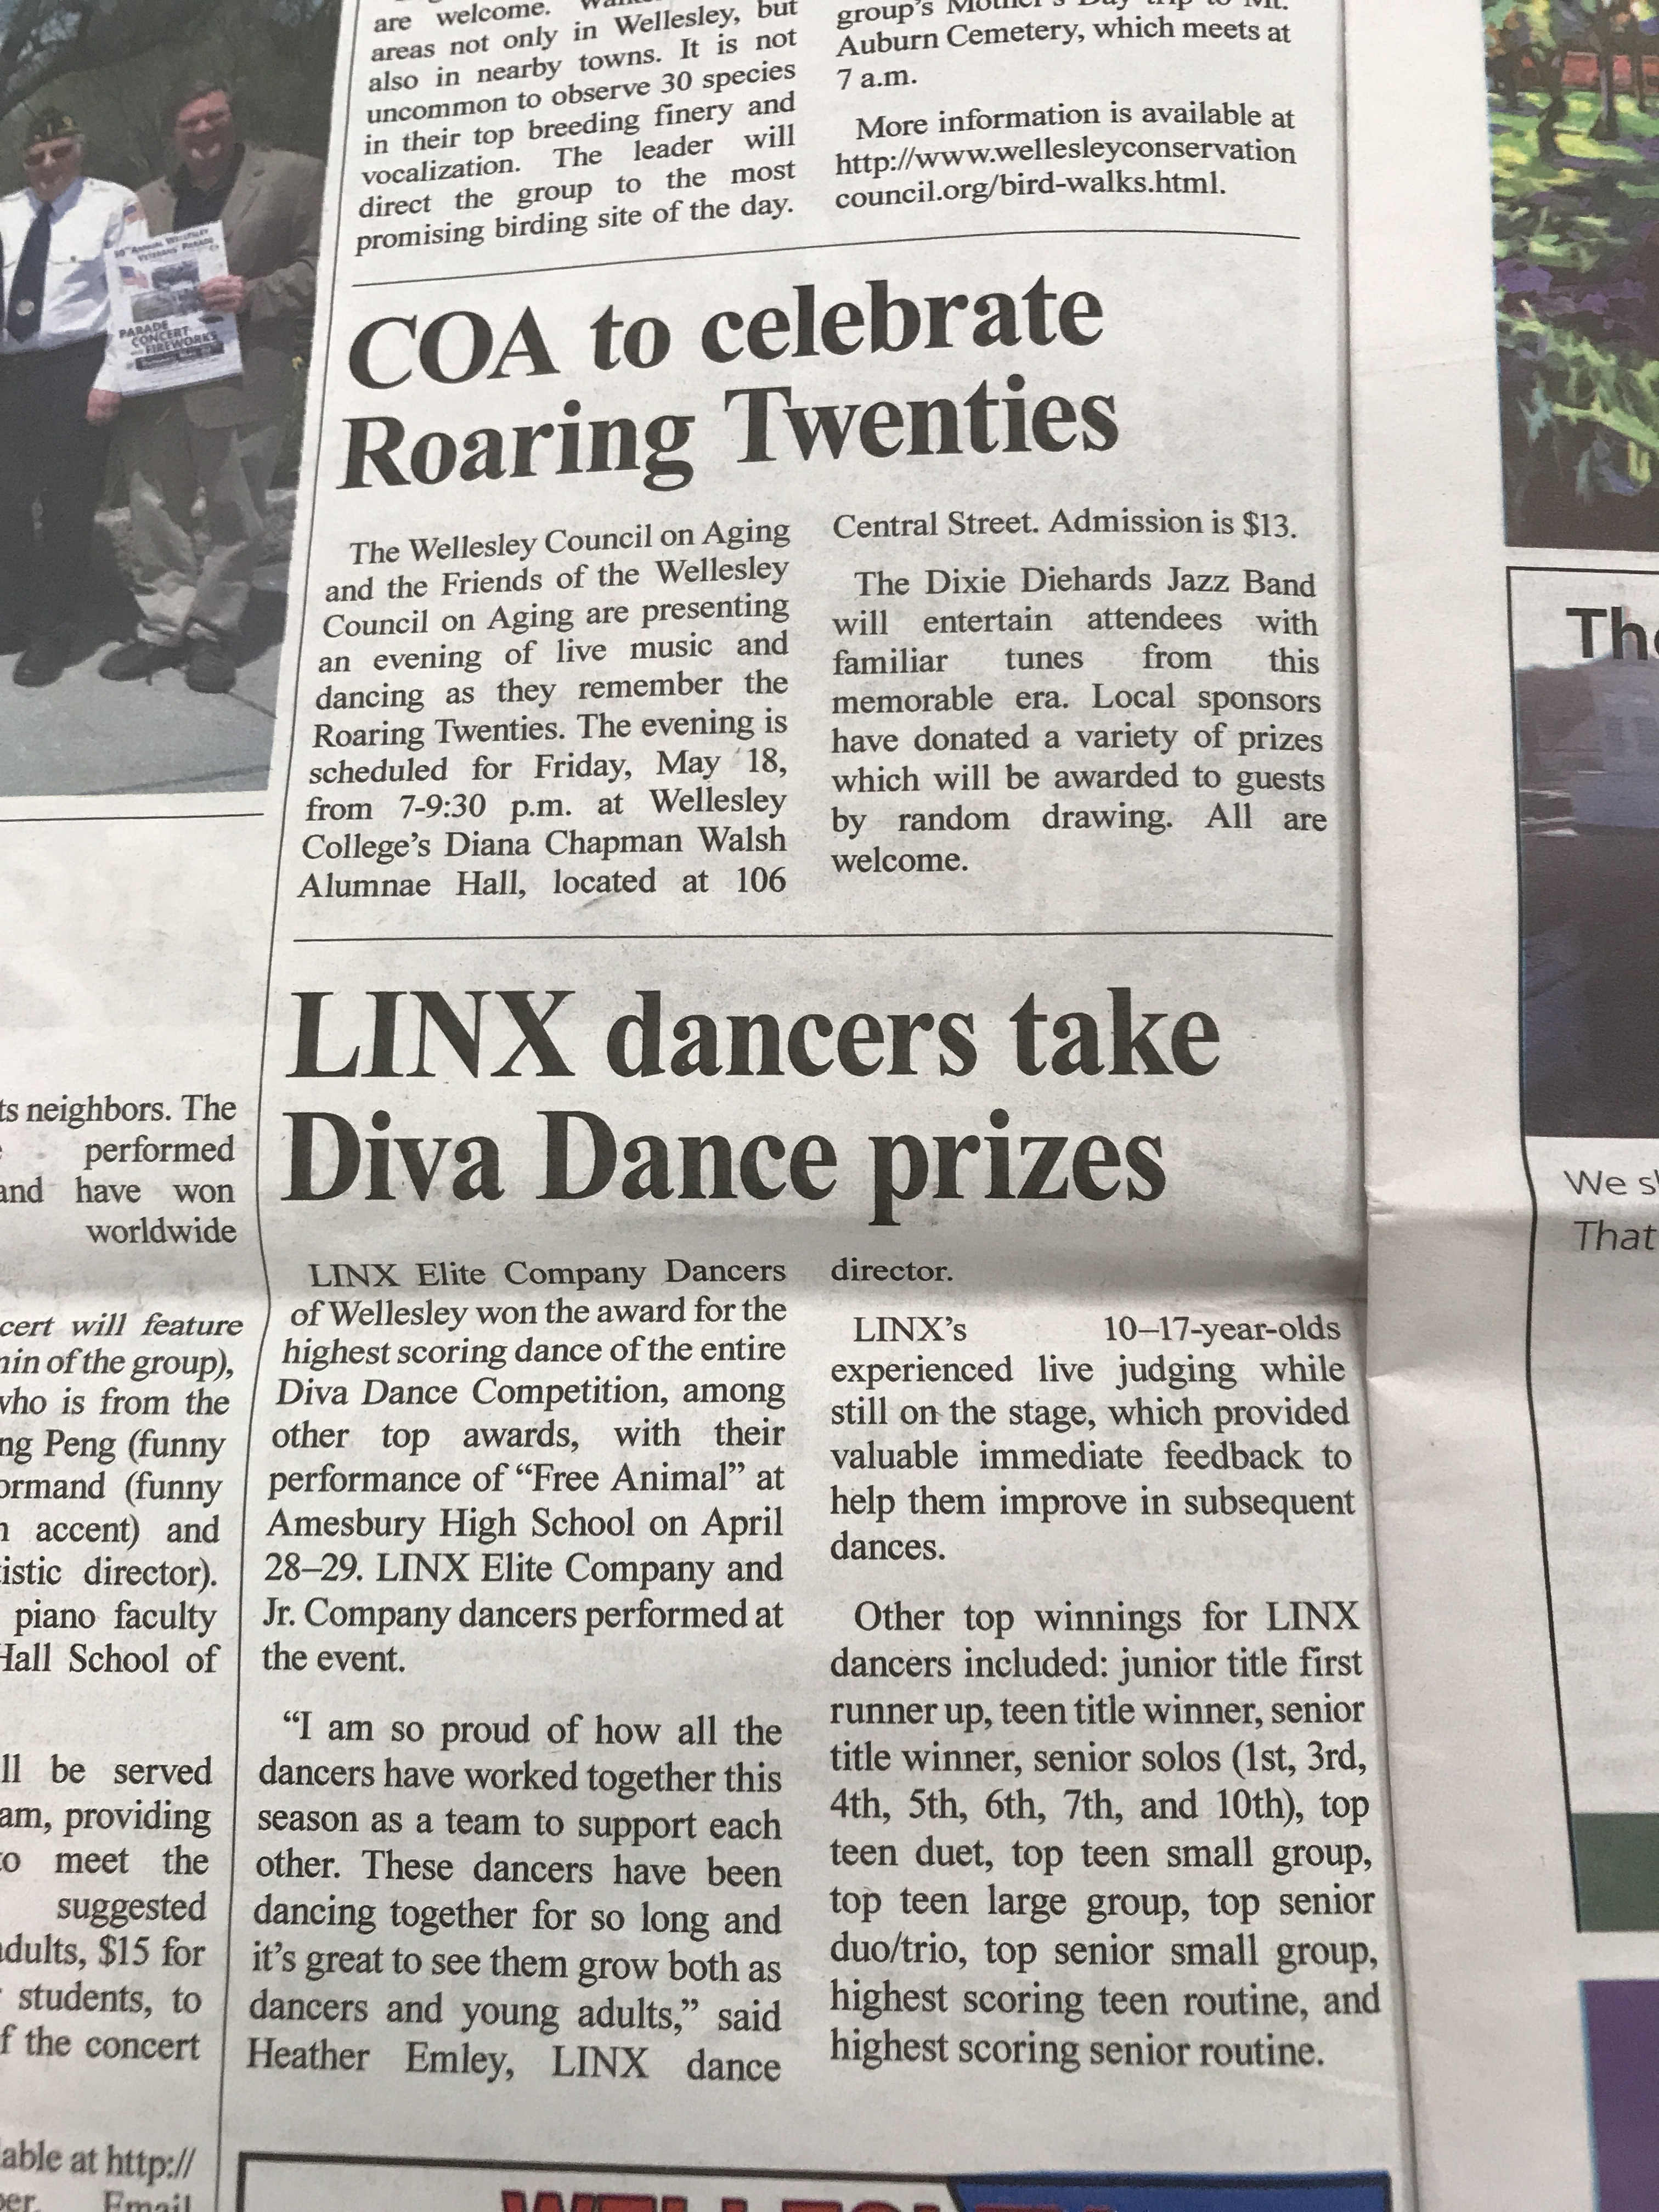 LINX Elite Company Dancers of Wellesley won the award for the highest scoring dance of the entire Diva Dance Competition, among other top awards, with their performance of